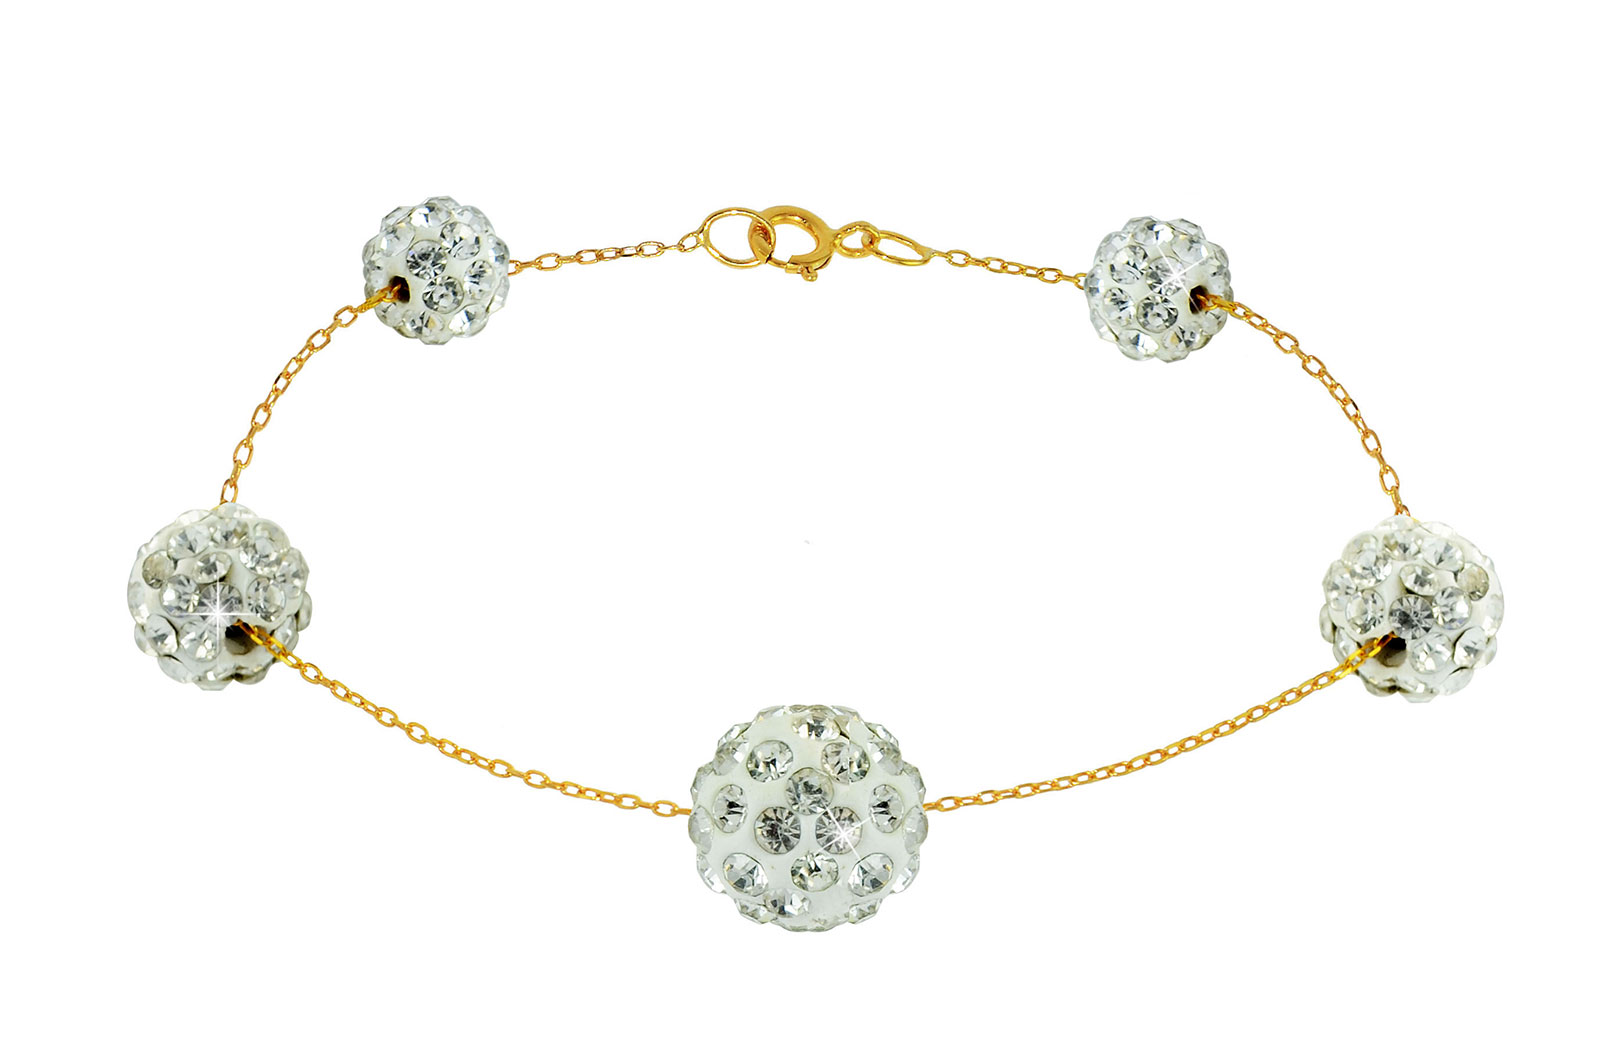 Vera Perla 18k Solid Gold Gradual Built-in Crystal Ball Bracelet